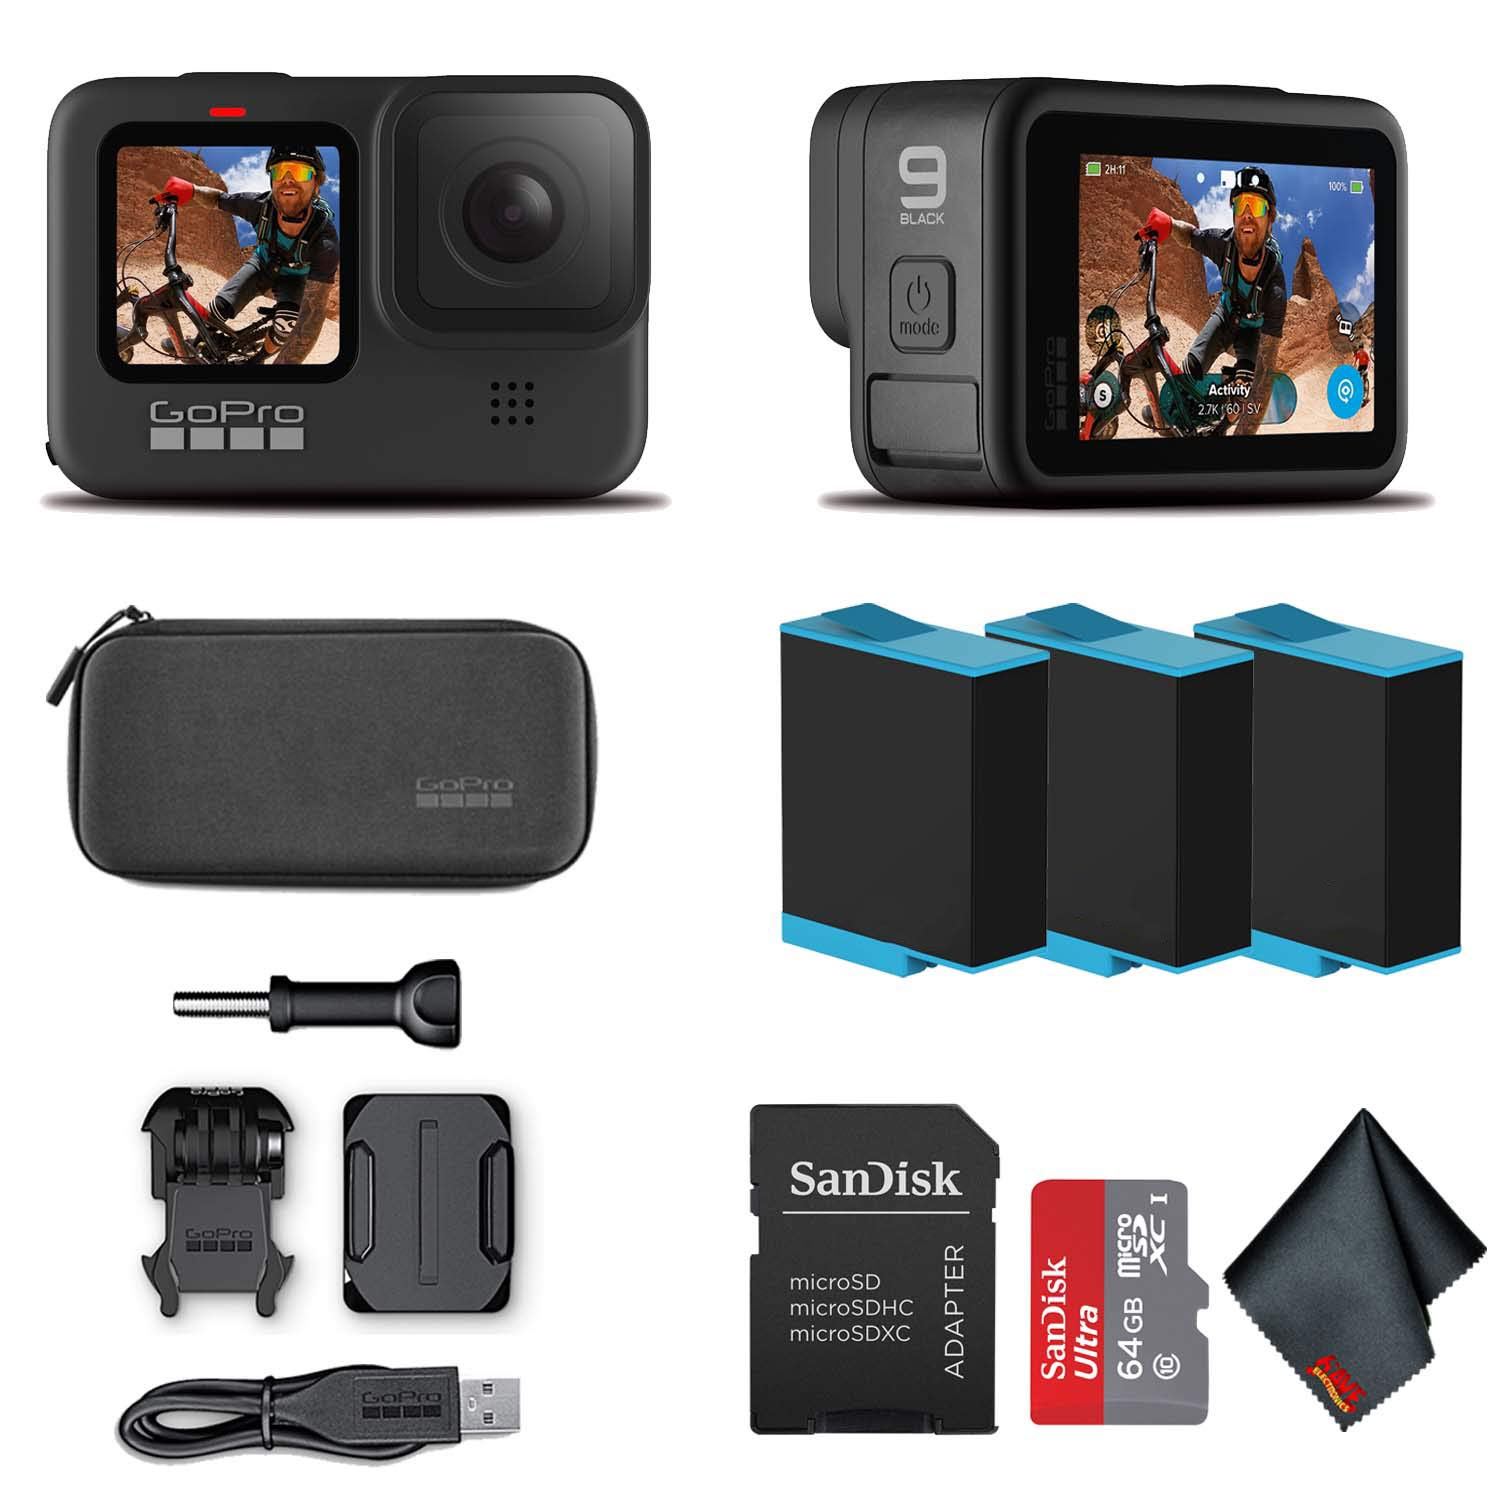 GoPro HERO9 Black - Waterproof Action Camera with Front LCD and Touch Rear Screens, 5K HD Video, 20MP Photos, 1080p Live Streaming, Stabilization + Sandisk 64GB Card and 2 Extra HERO9 Batteries